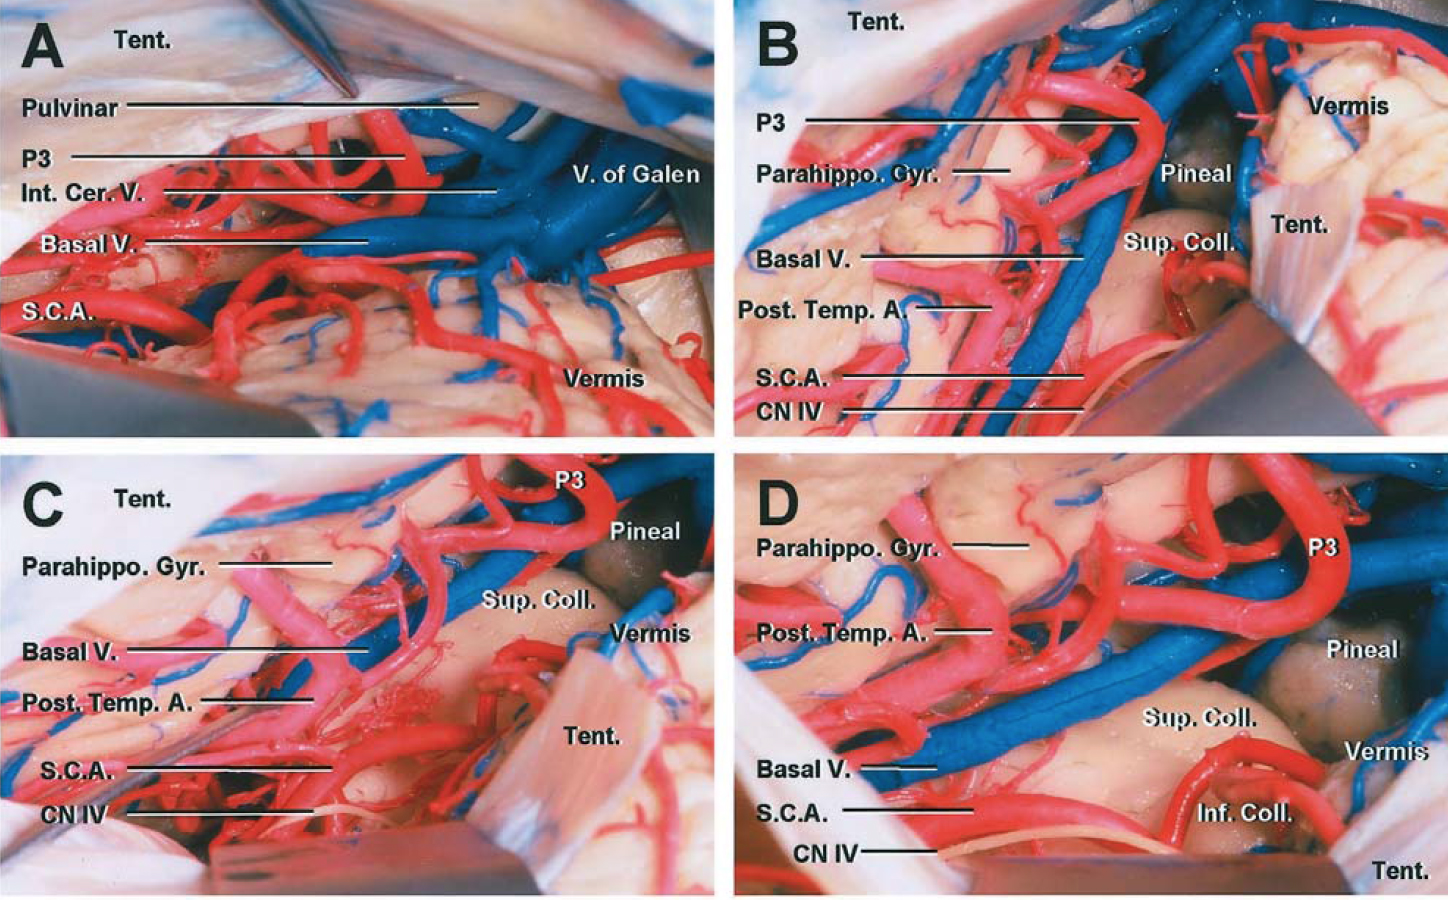 Figure 8: Sectioning a window of the left tentorium through a paramedian supracerebellar craniotomy exposes the posterior ambien cisterns, basal temporal lobe, and the relevant arterial anatomy (B, C, and D). Note the generous exposure of the posterior parahippocampus and distal posterior cerebral artery branches through this route (Images courtesy of AL Rhoton, Jr).